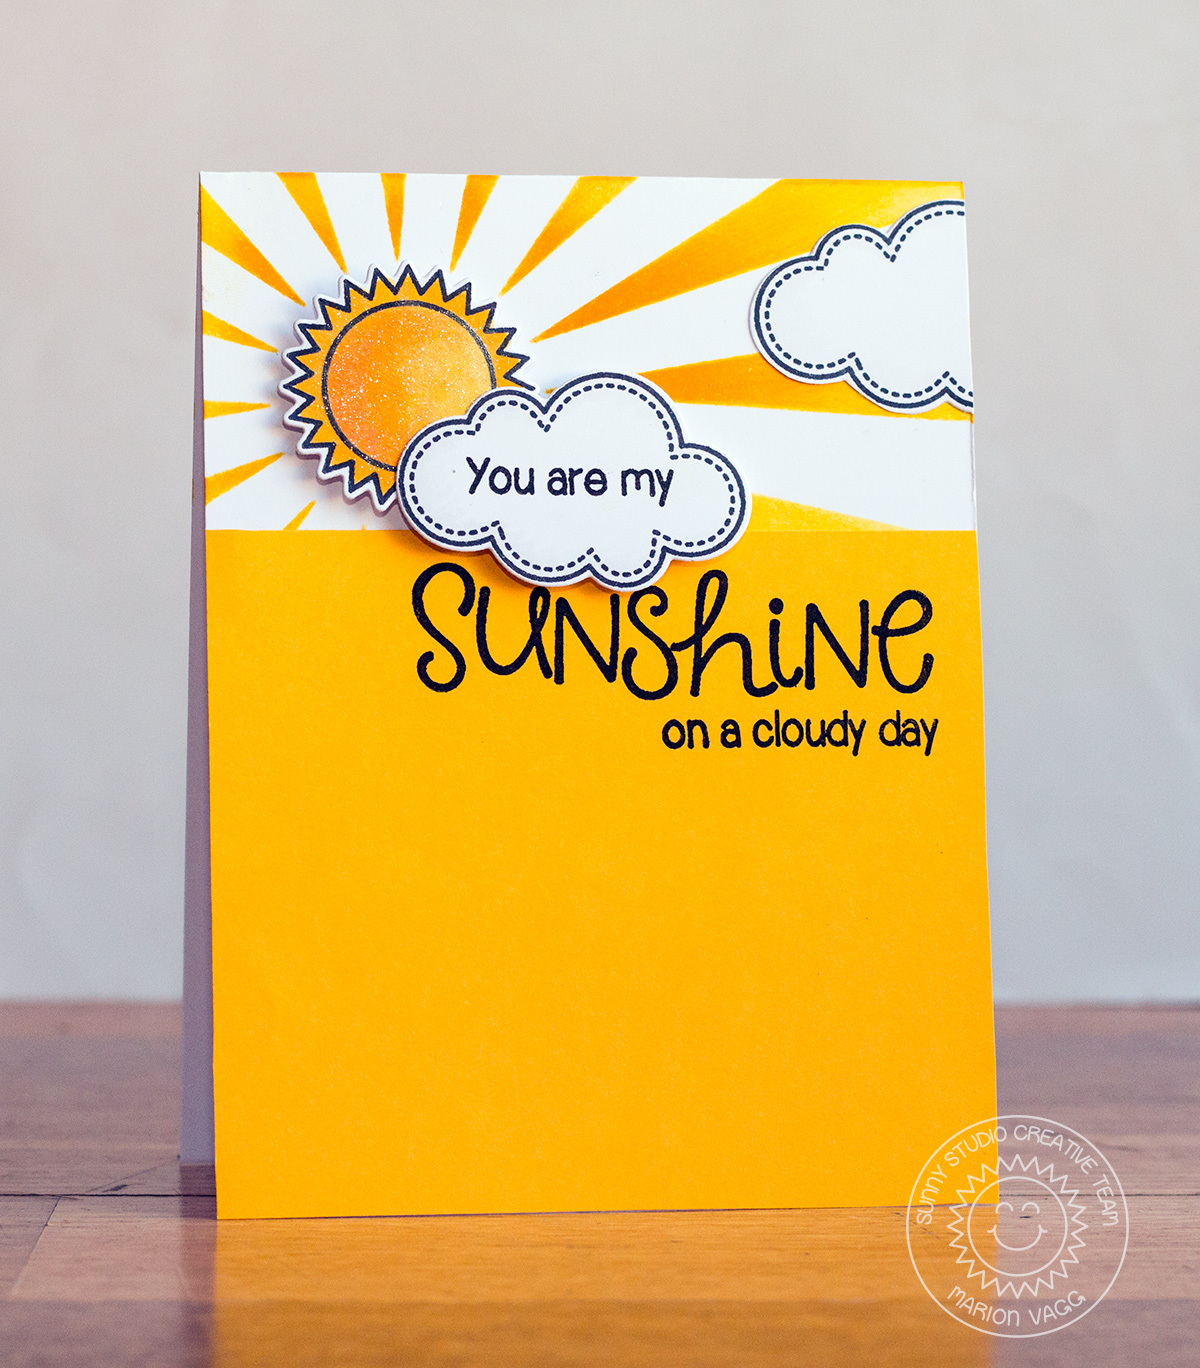 You are my Sunshine   Marion Vagg